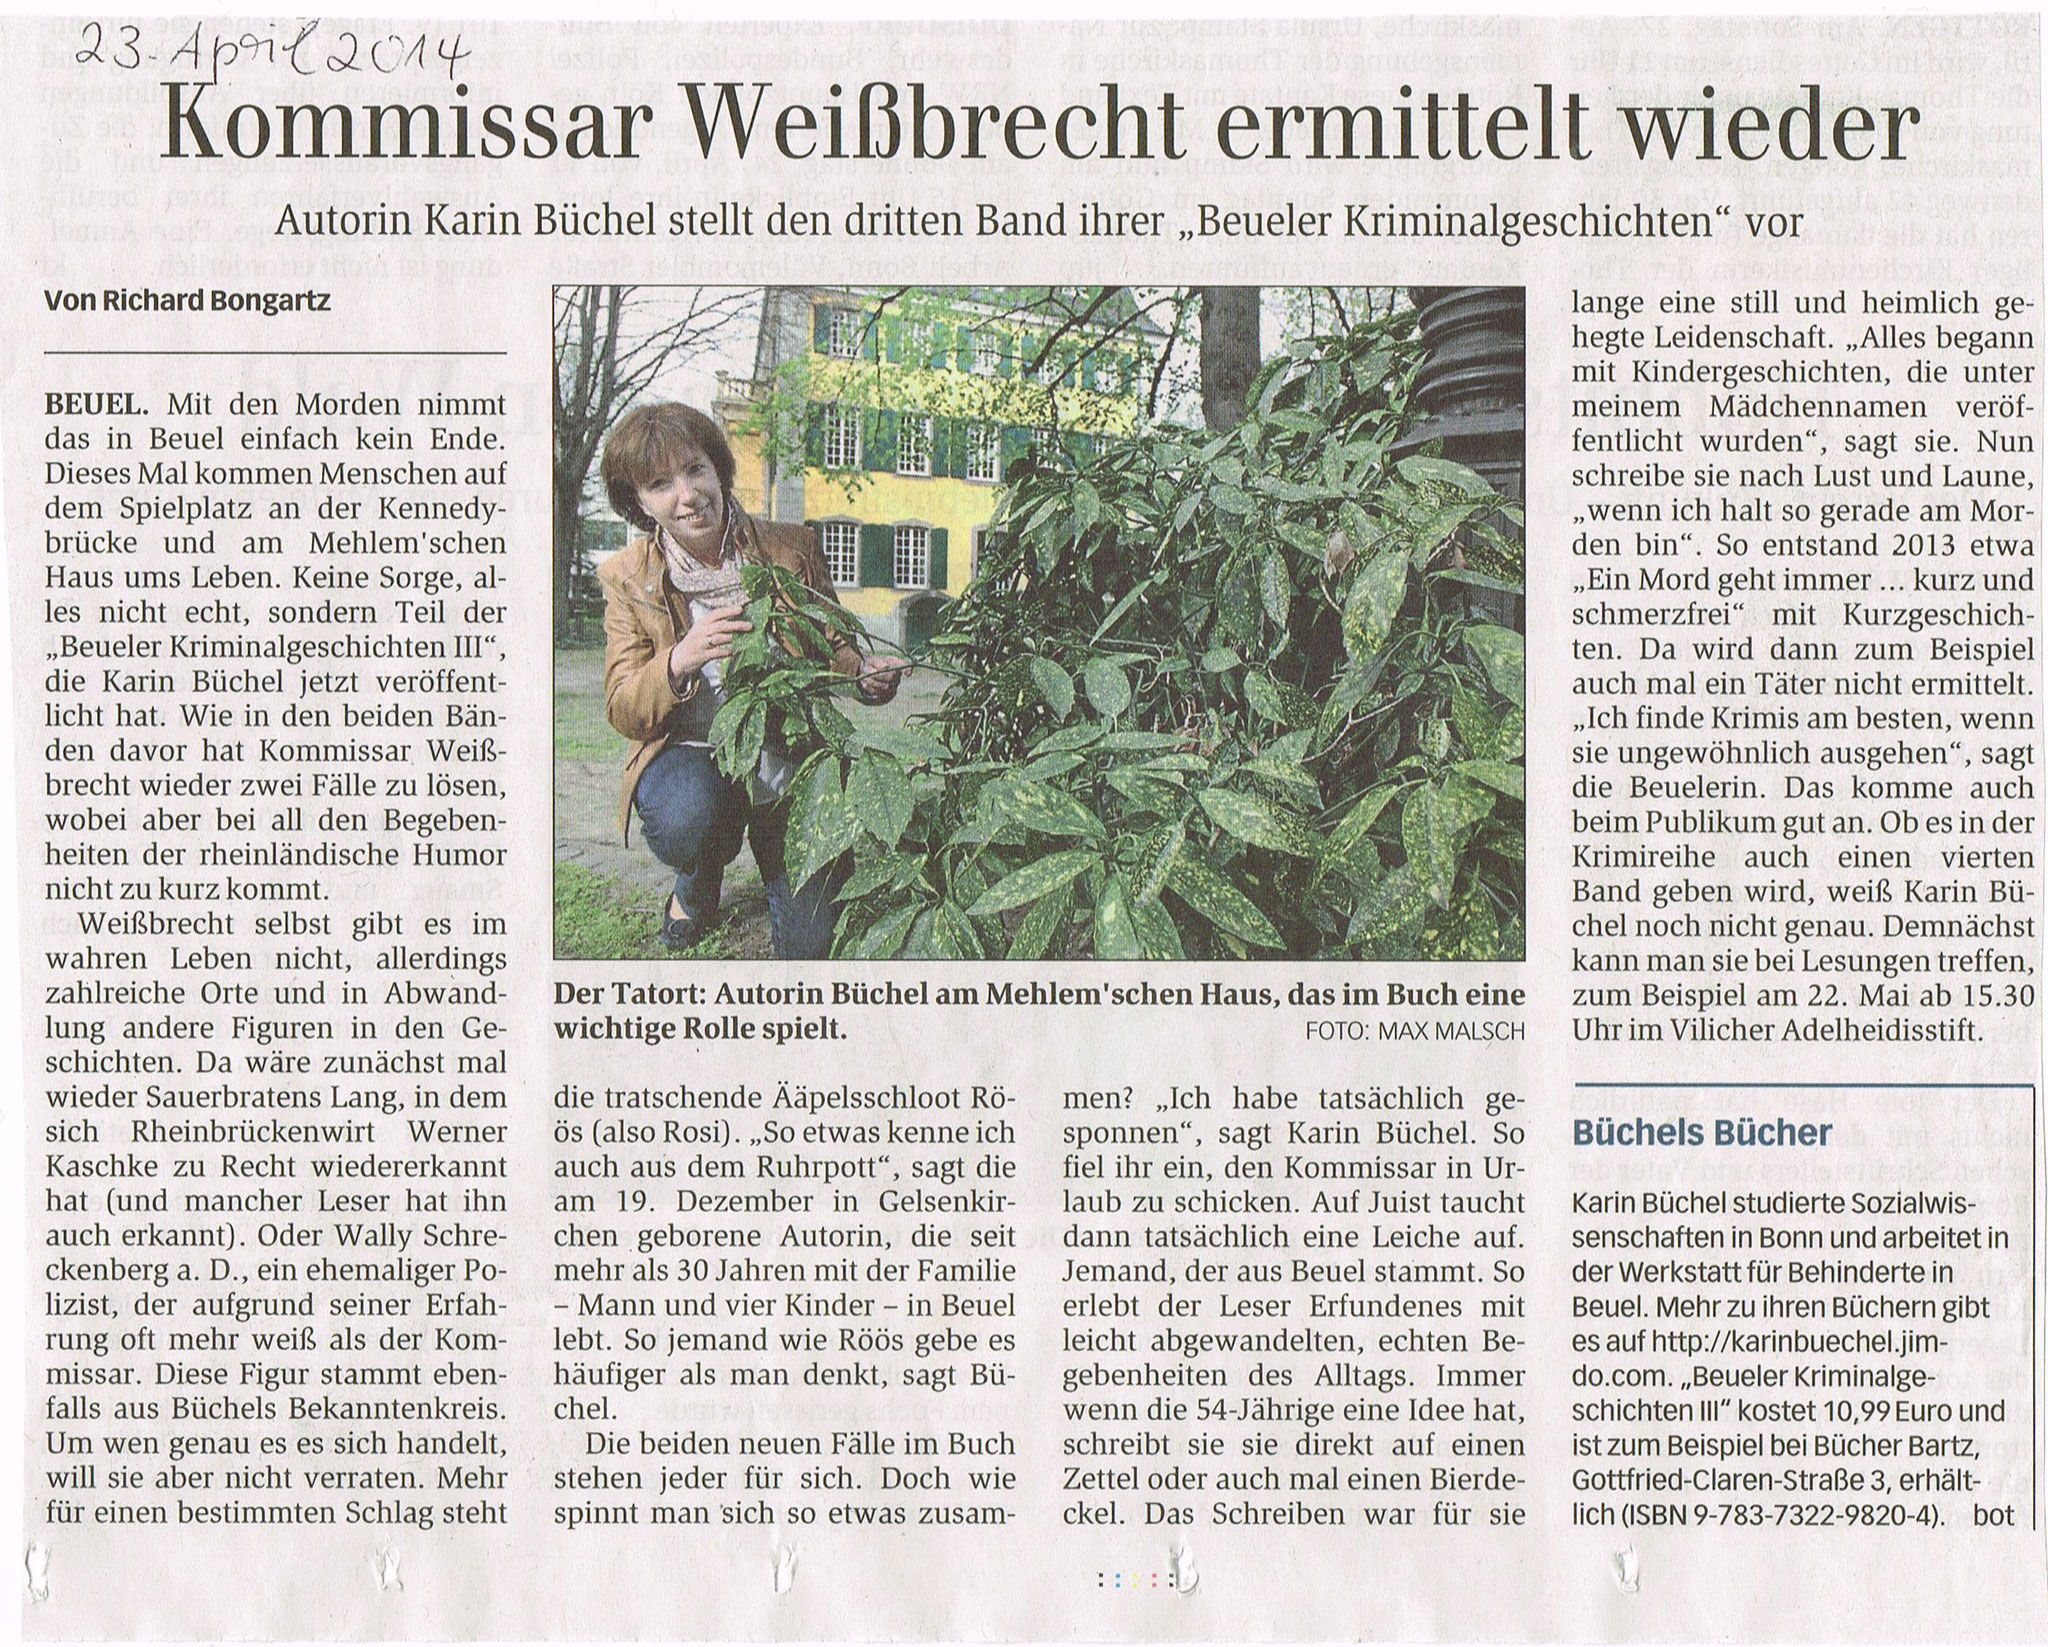 Generalanzeiger, 23. April 2014